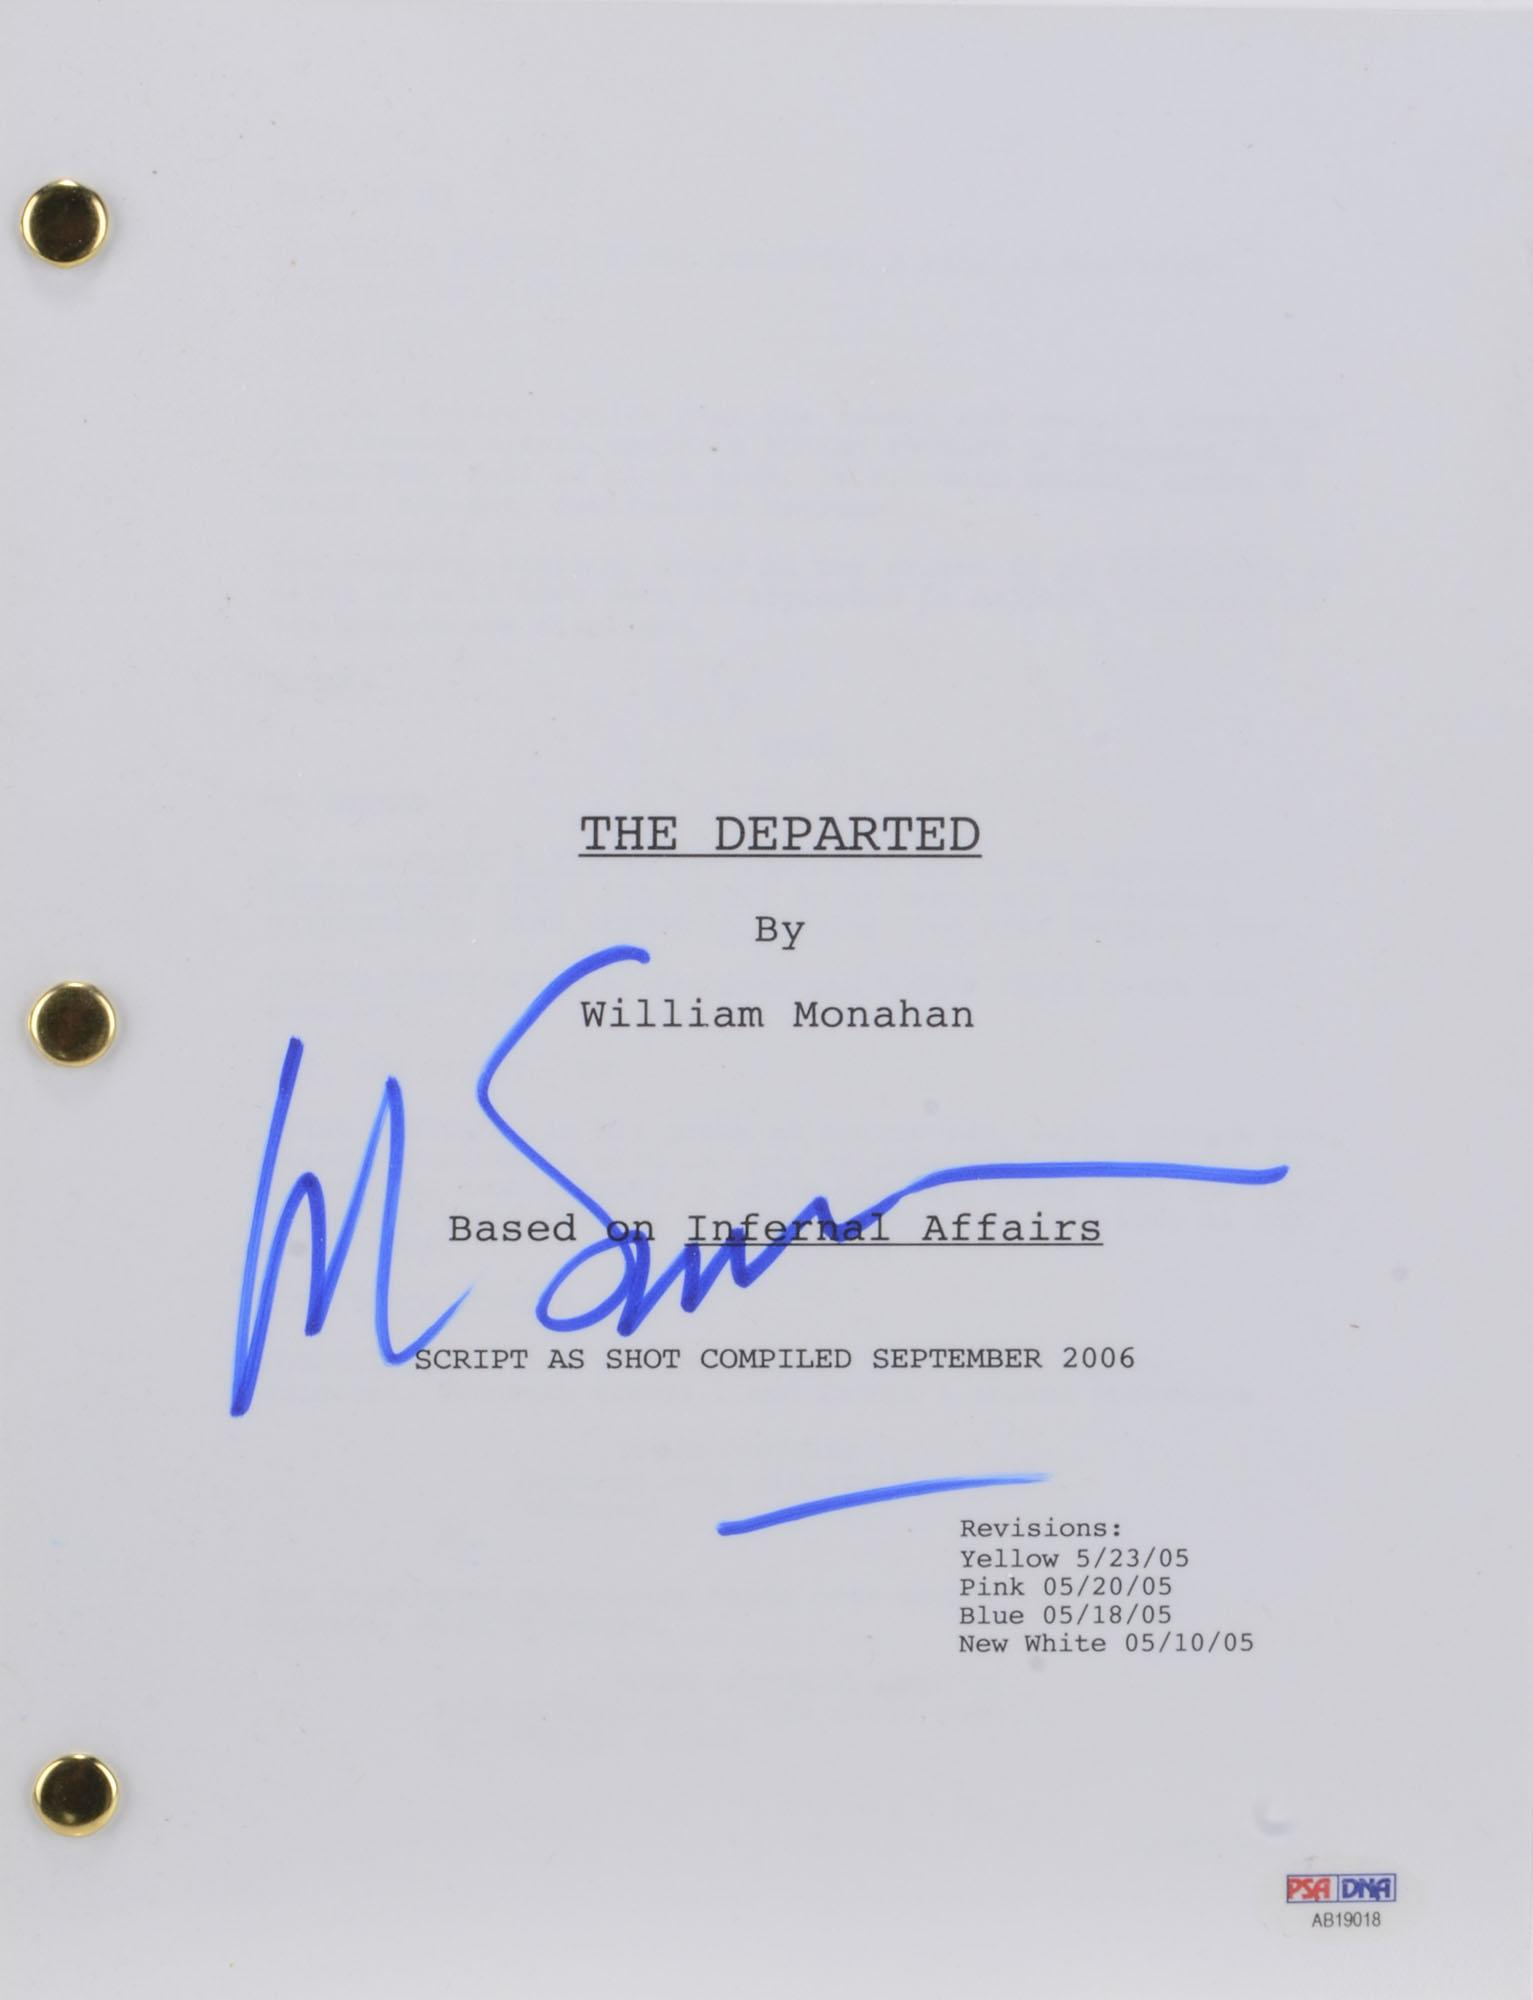 Martin Scorsese Autographed The Departed Replica Movie Script - PSA/DNA